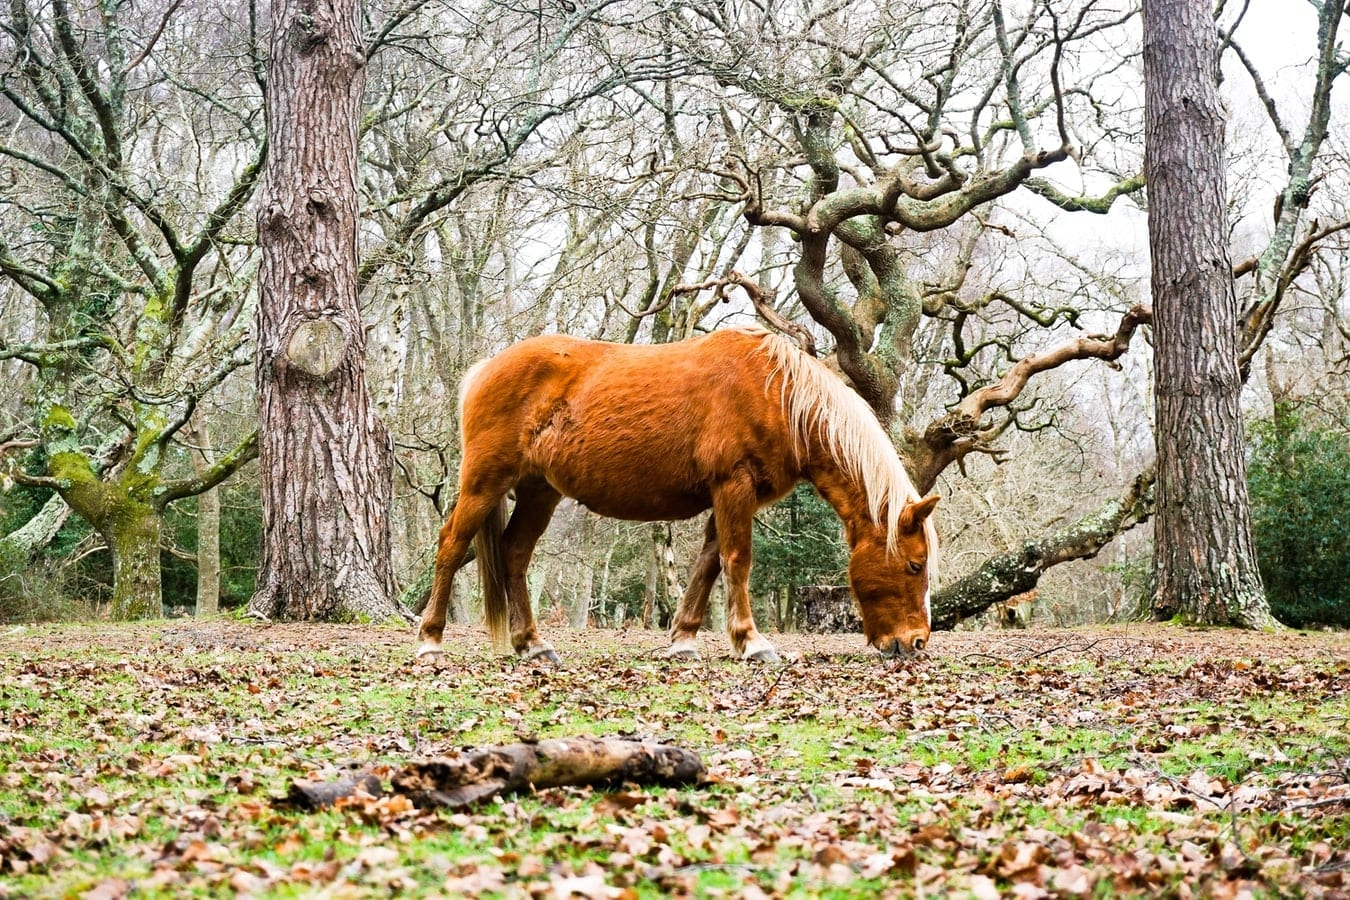 If you hire one of our campervans in The New Forest, you can see all of the amazing wildlife.